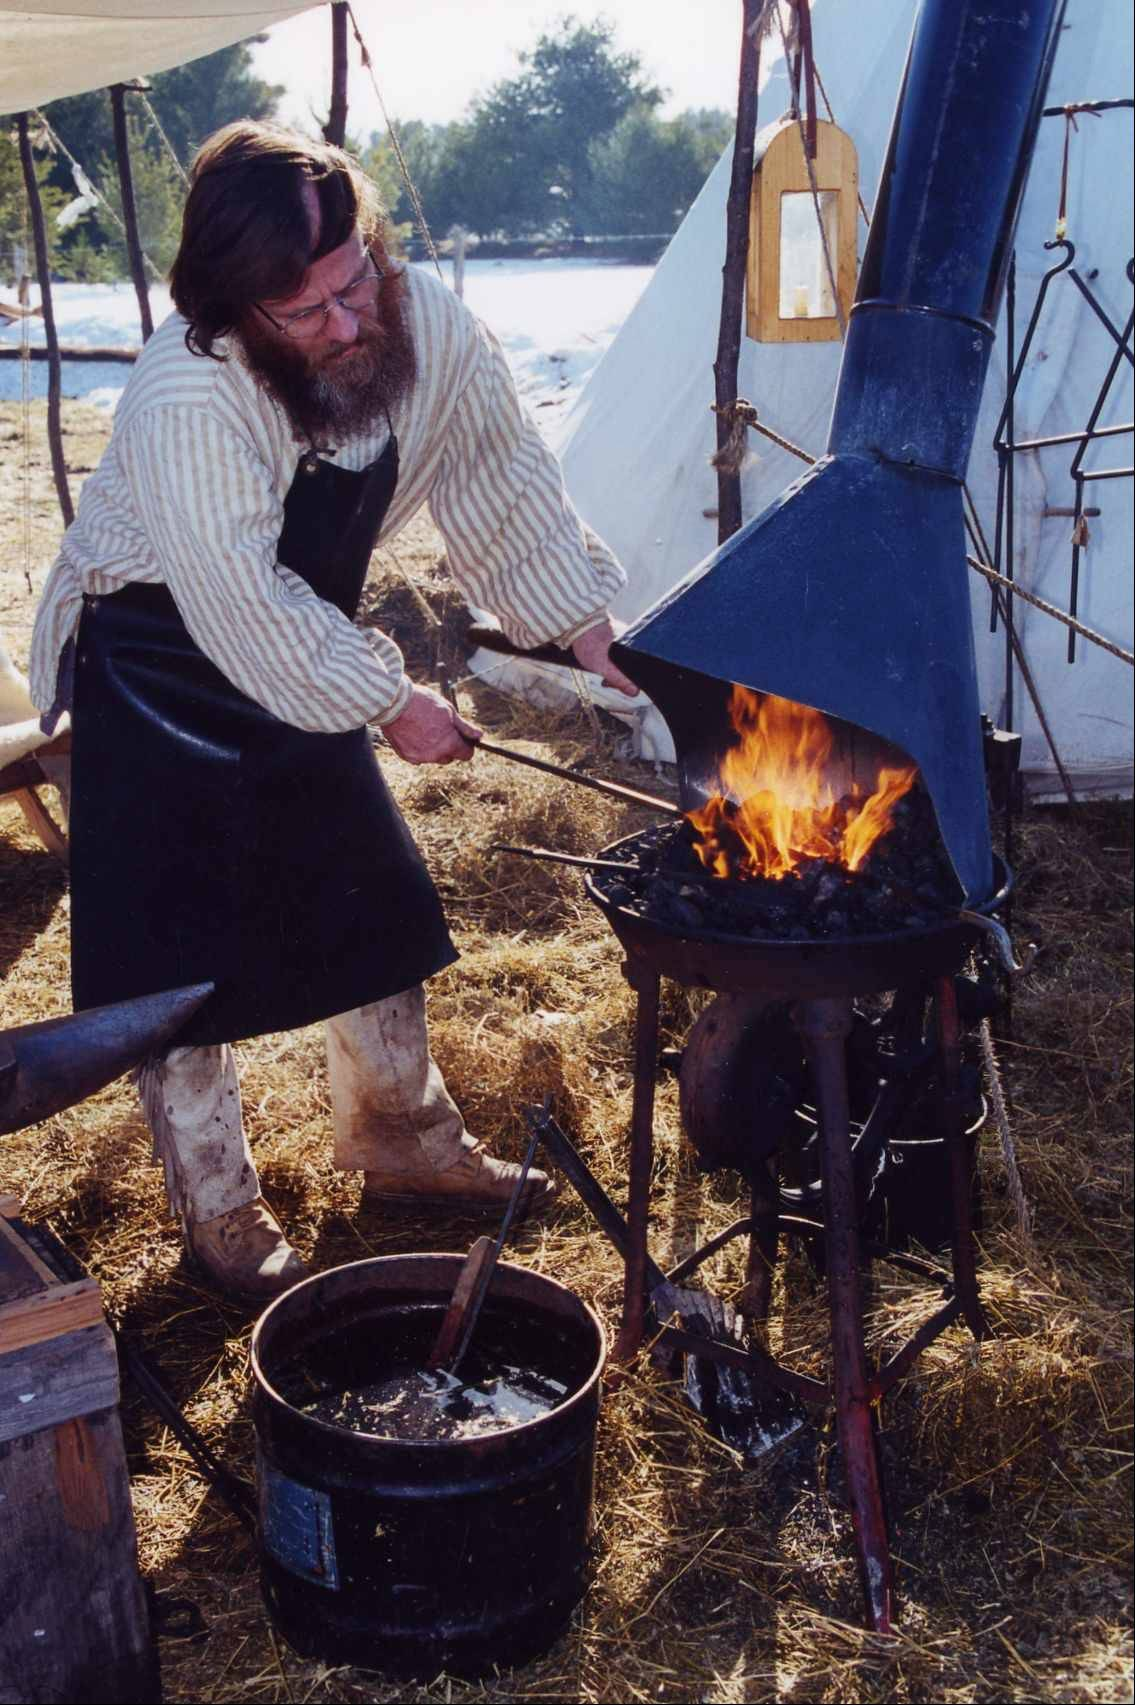 See an authentic period Voyageur encampment at the 22nd Annual Trig's Klondike Days March 3-4 in Eagle River, Wis.